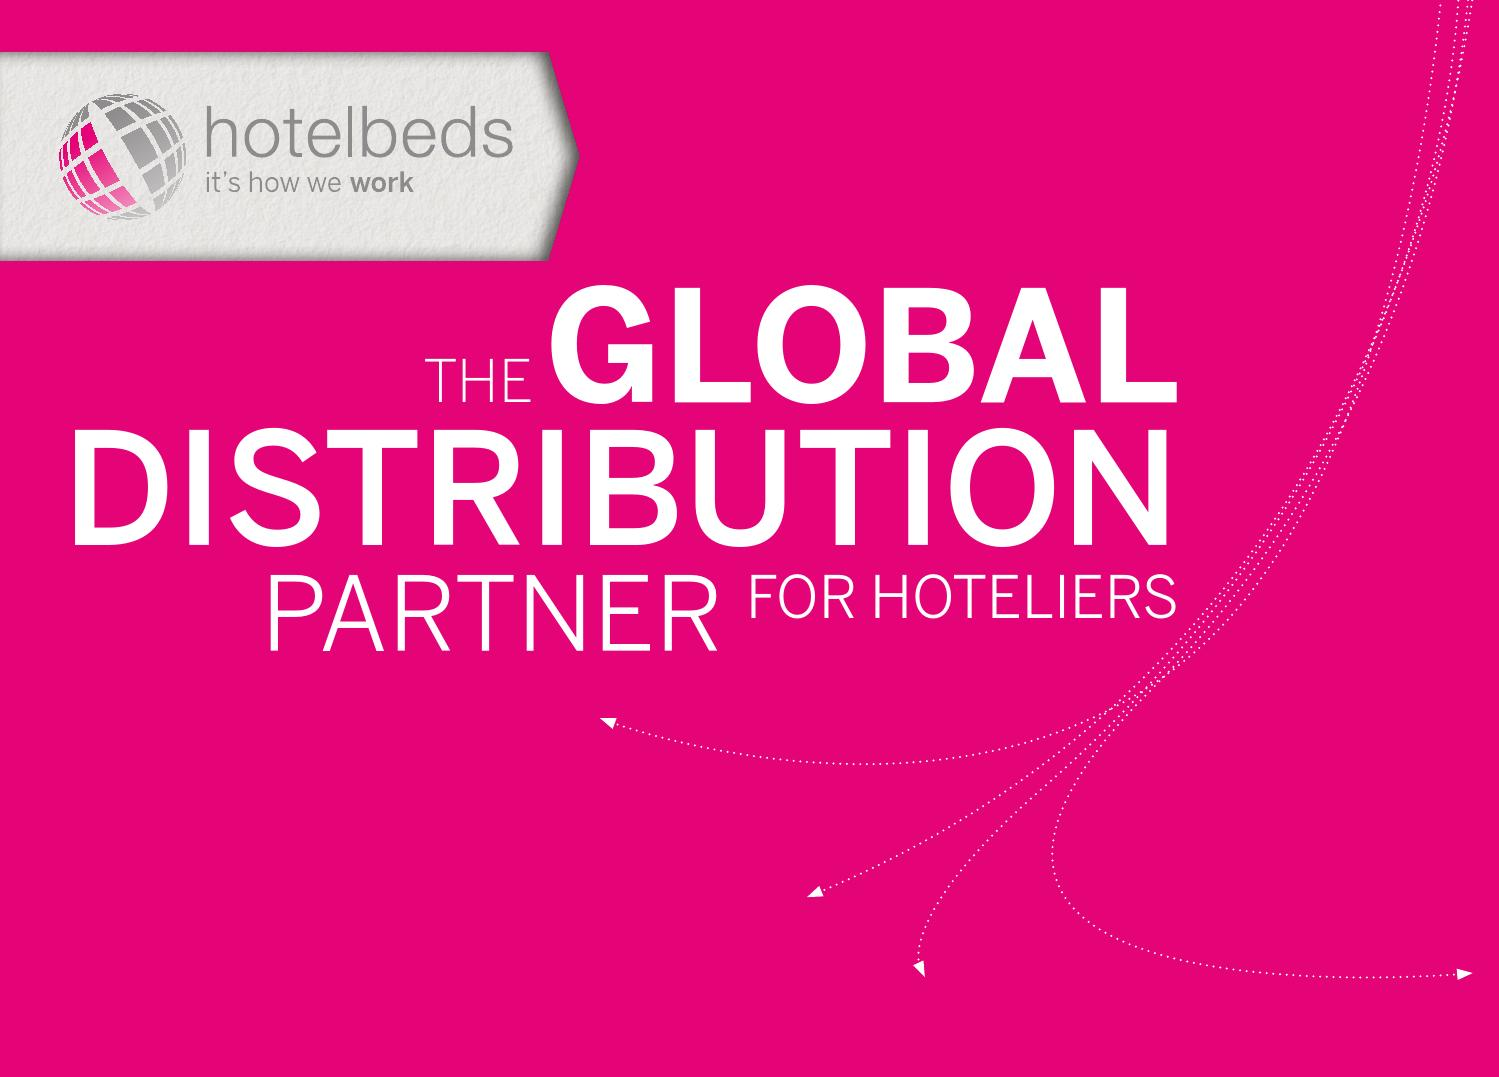 Hotelbeds - the Global Distribution Partner for Hoteliers by